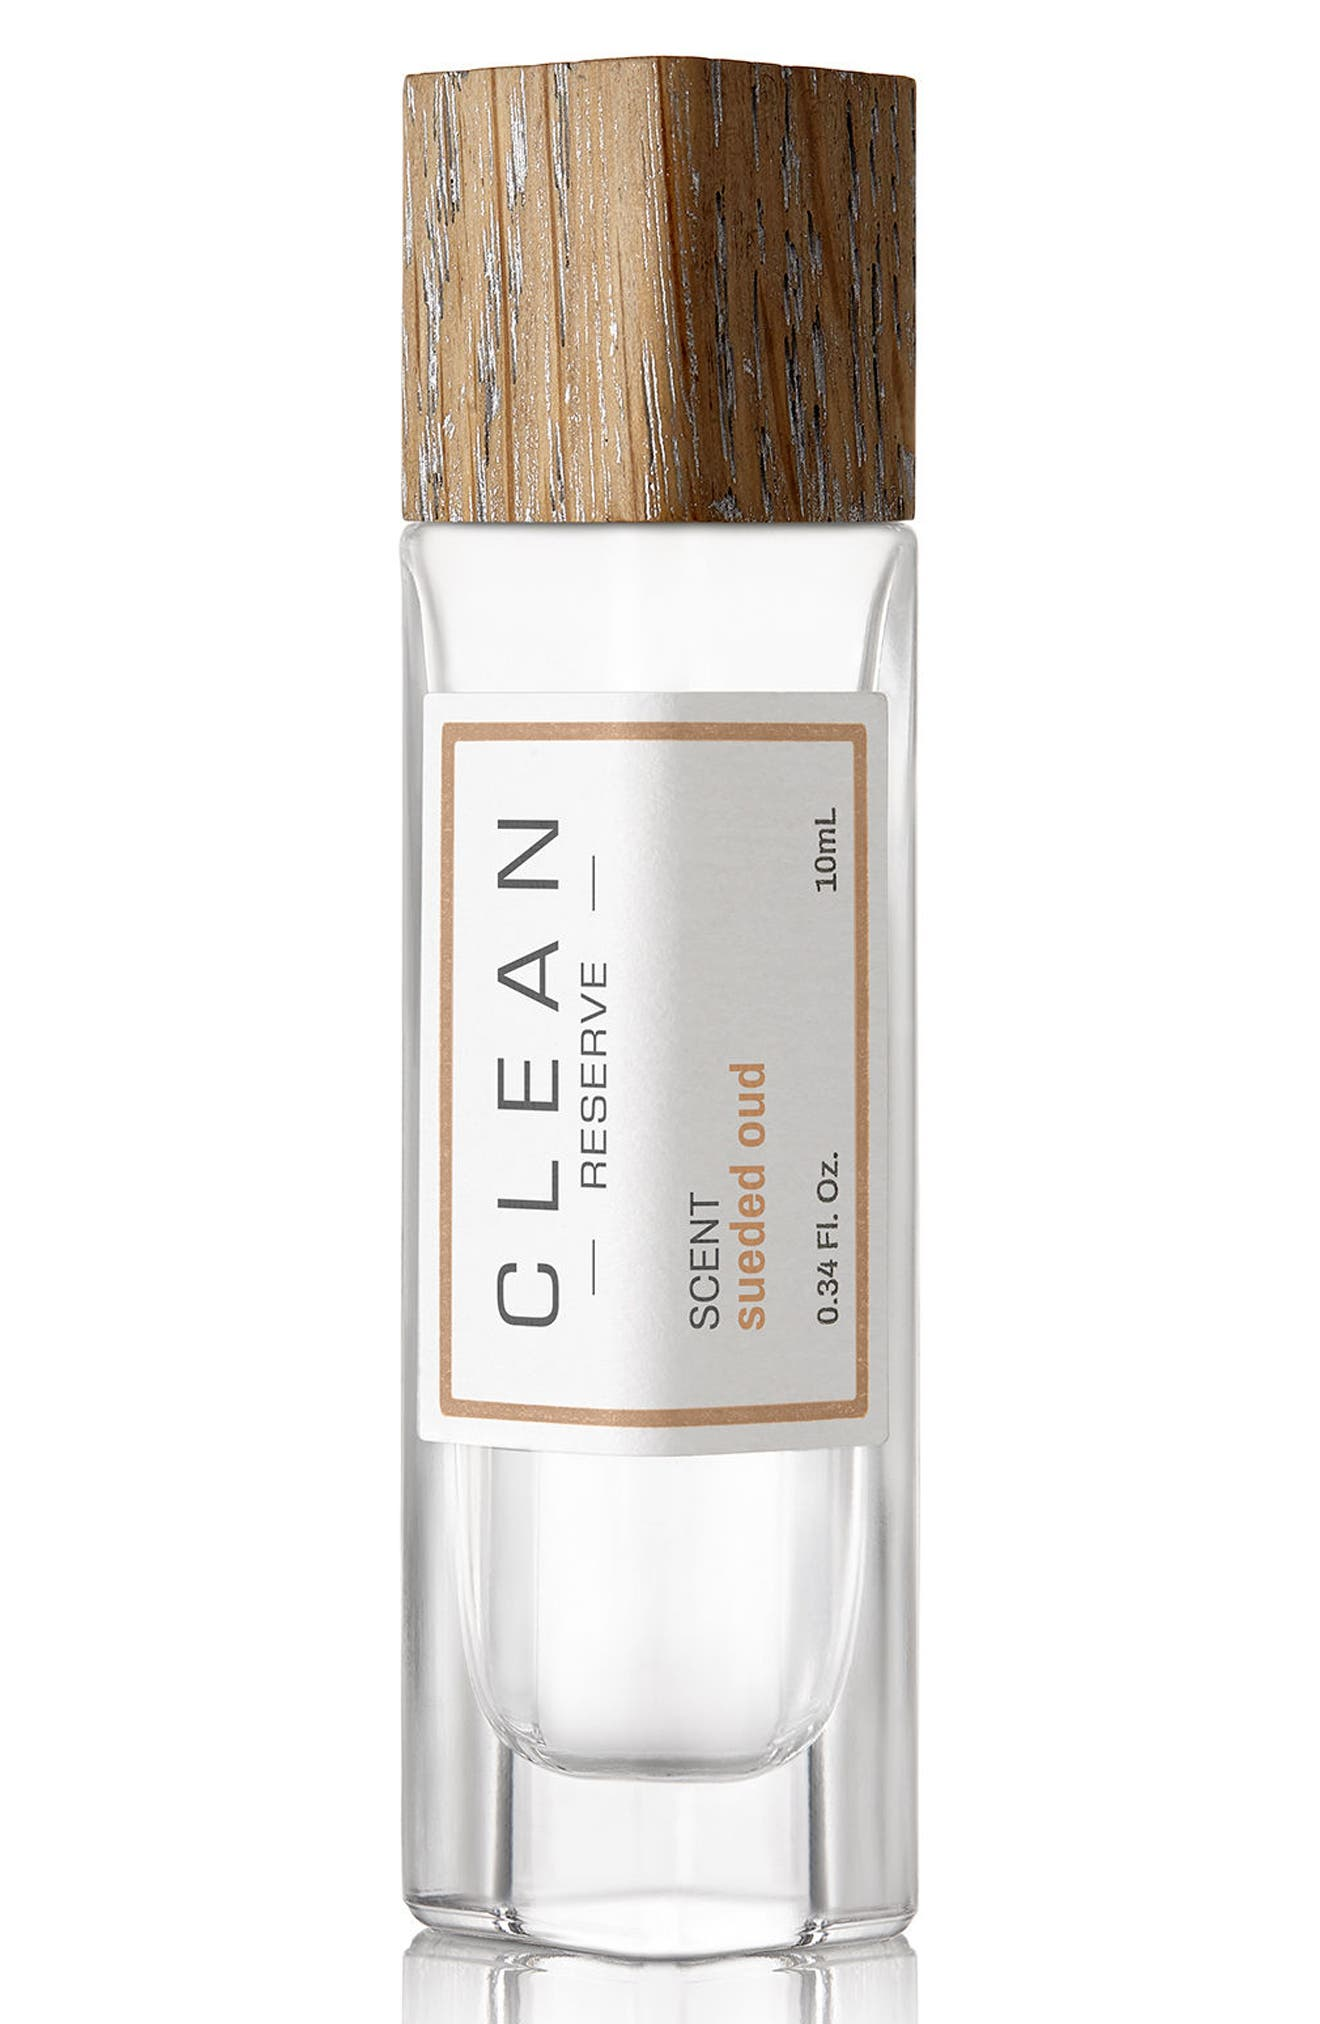 Alternate Image 1 Selected - Clean Reserve Sueded Oud Eau de Parfum Pen Spray